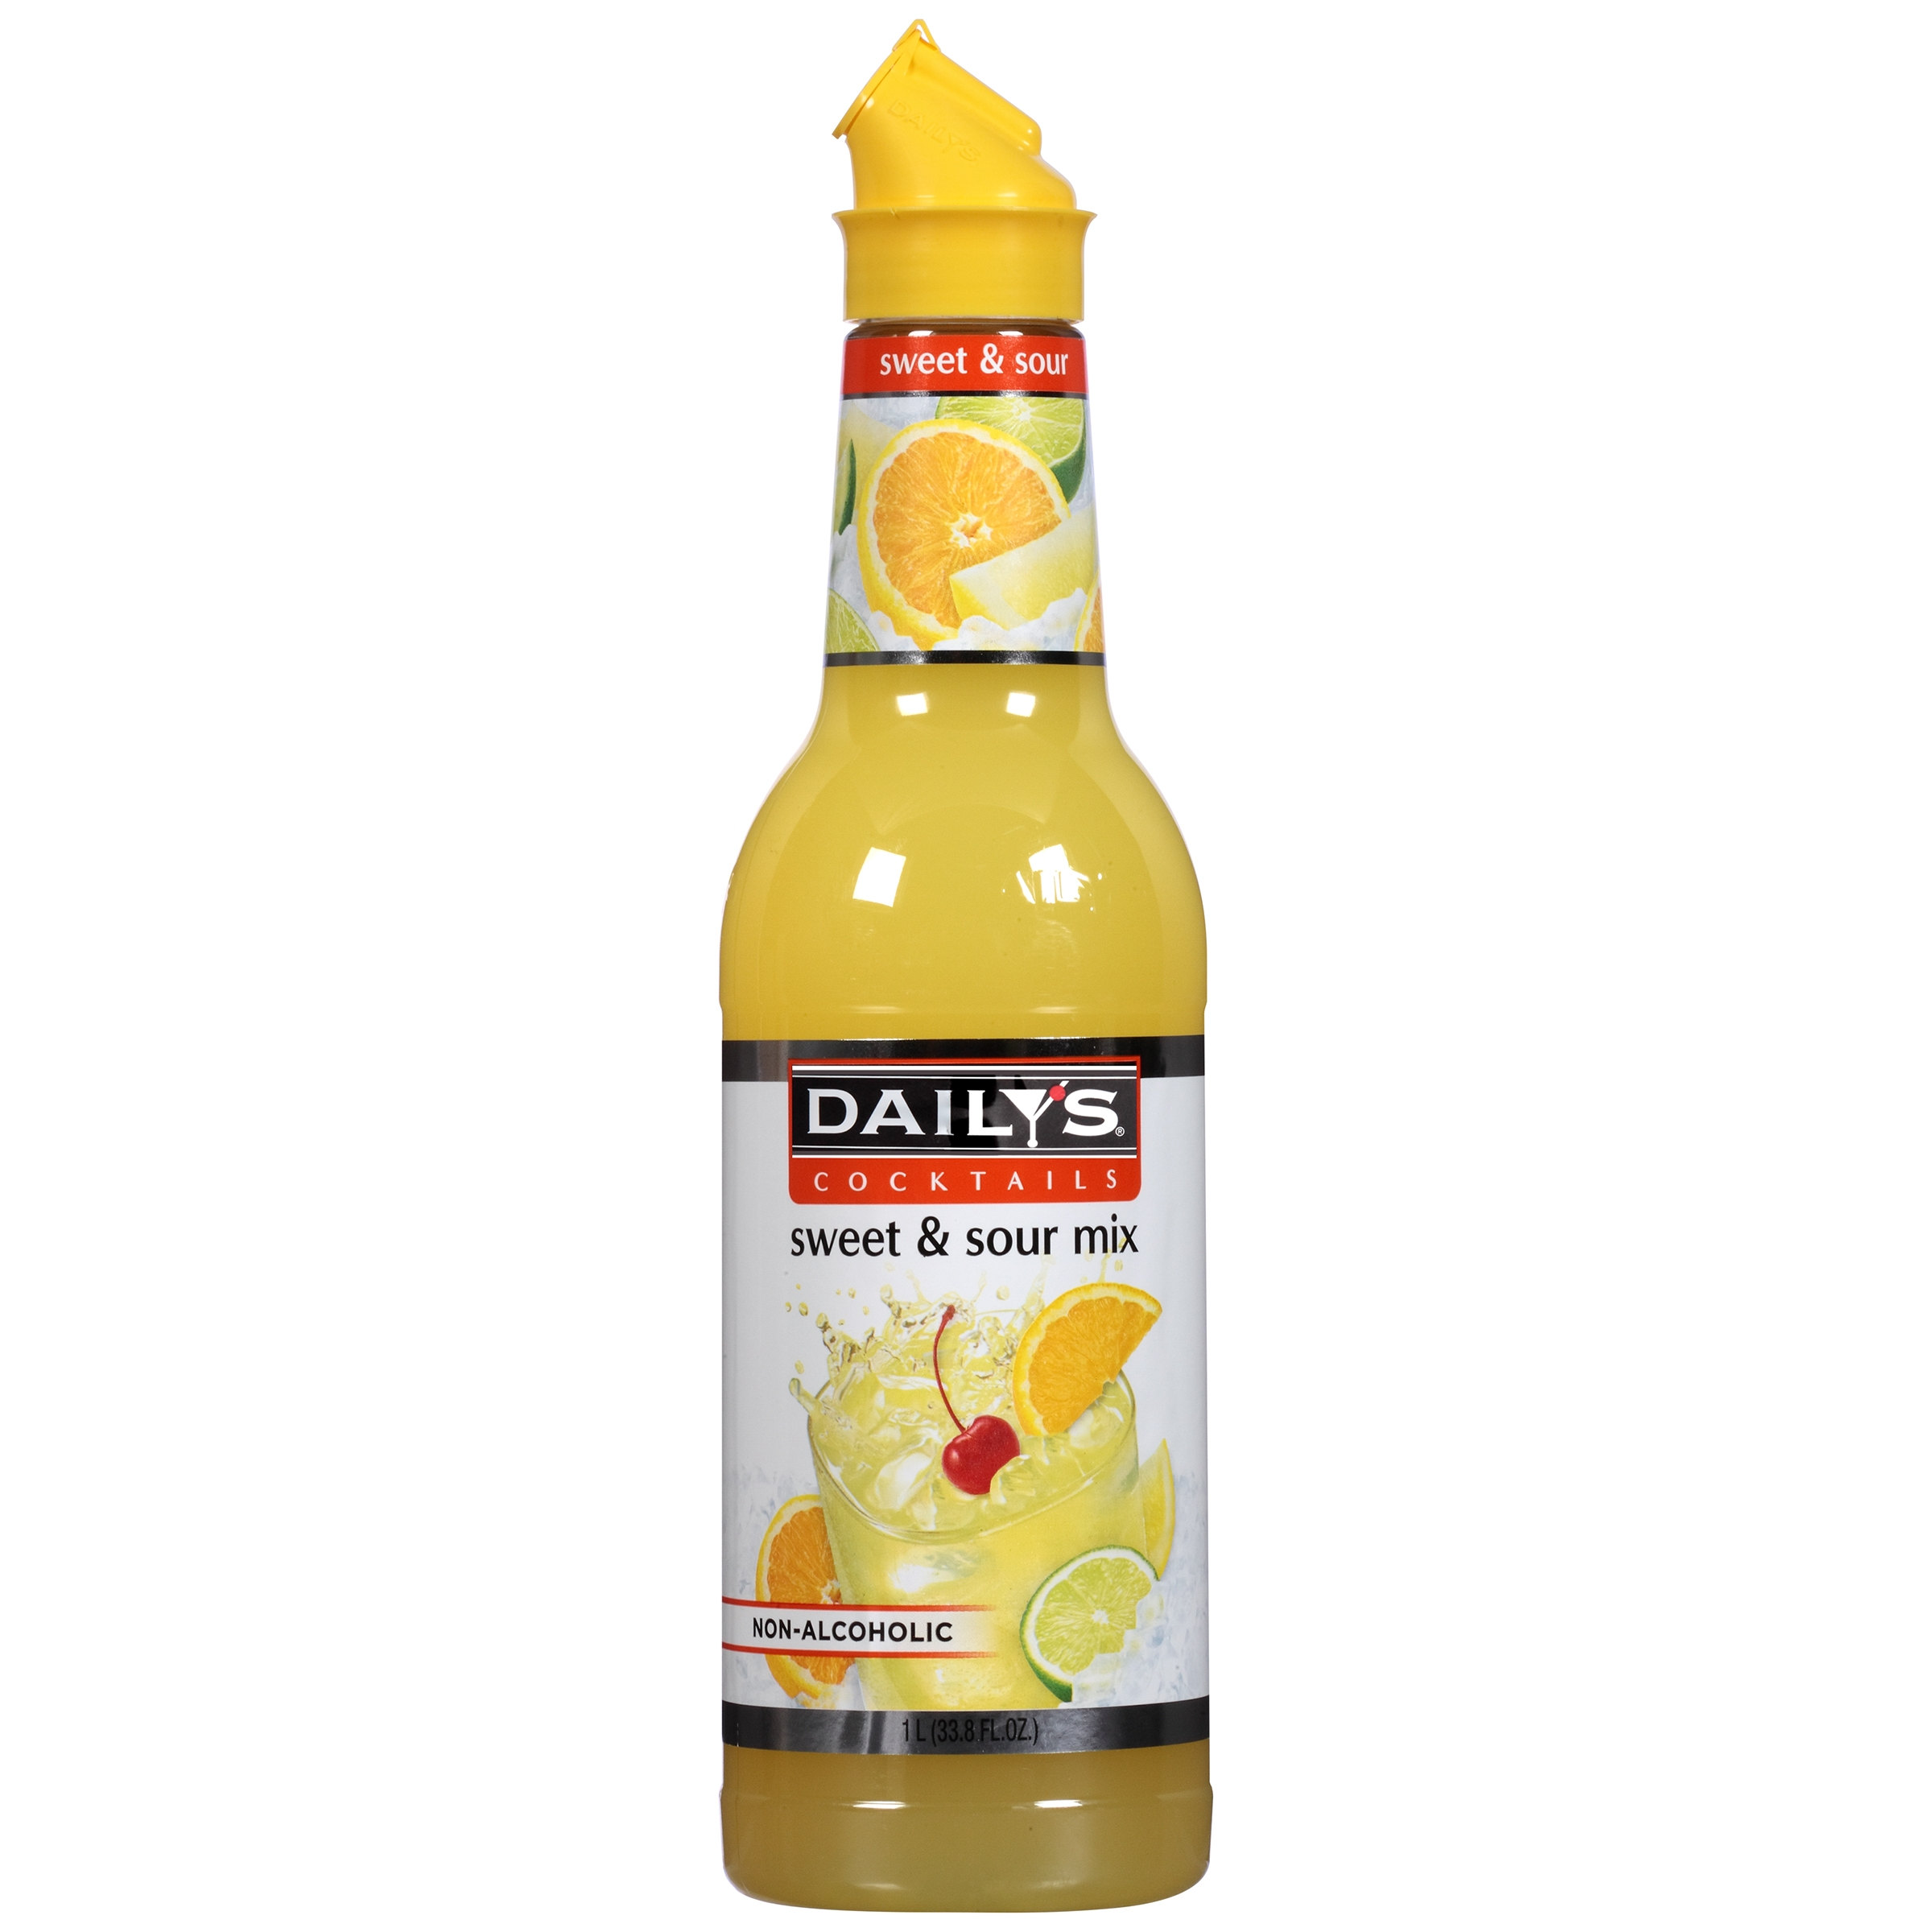 Daily's Cocktails Sweet & Sour Non-Alcoholic Cocktail Mix 33.8 fl. oz. Bottle by American Beverage Corp.